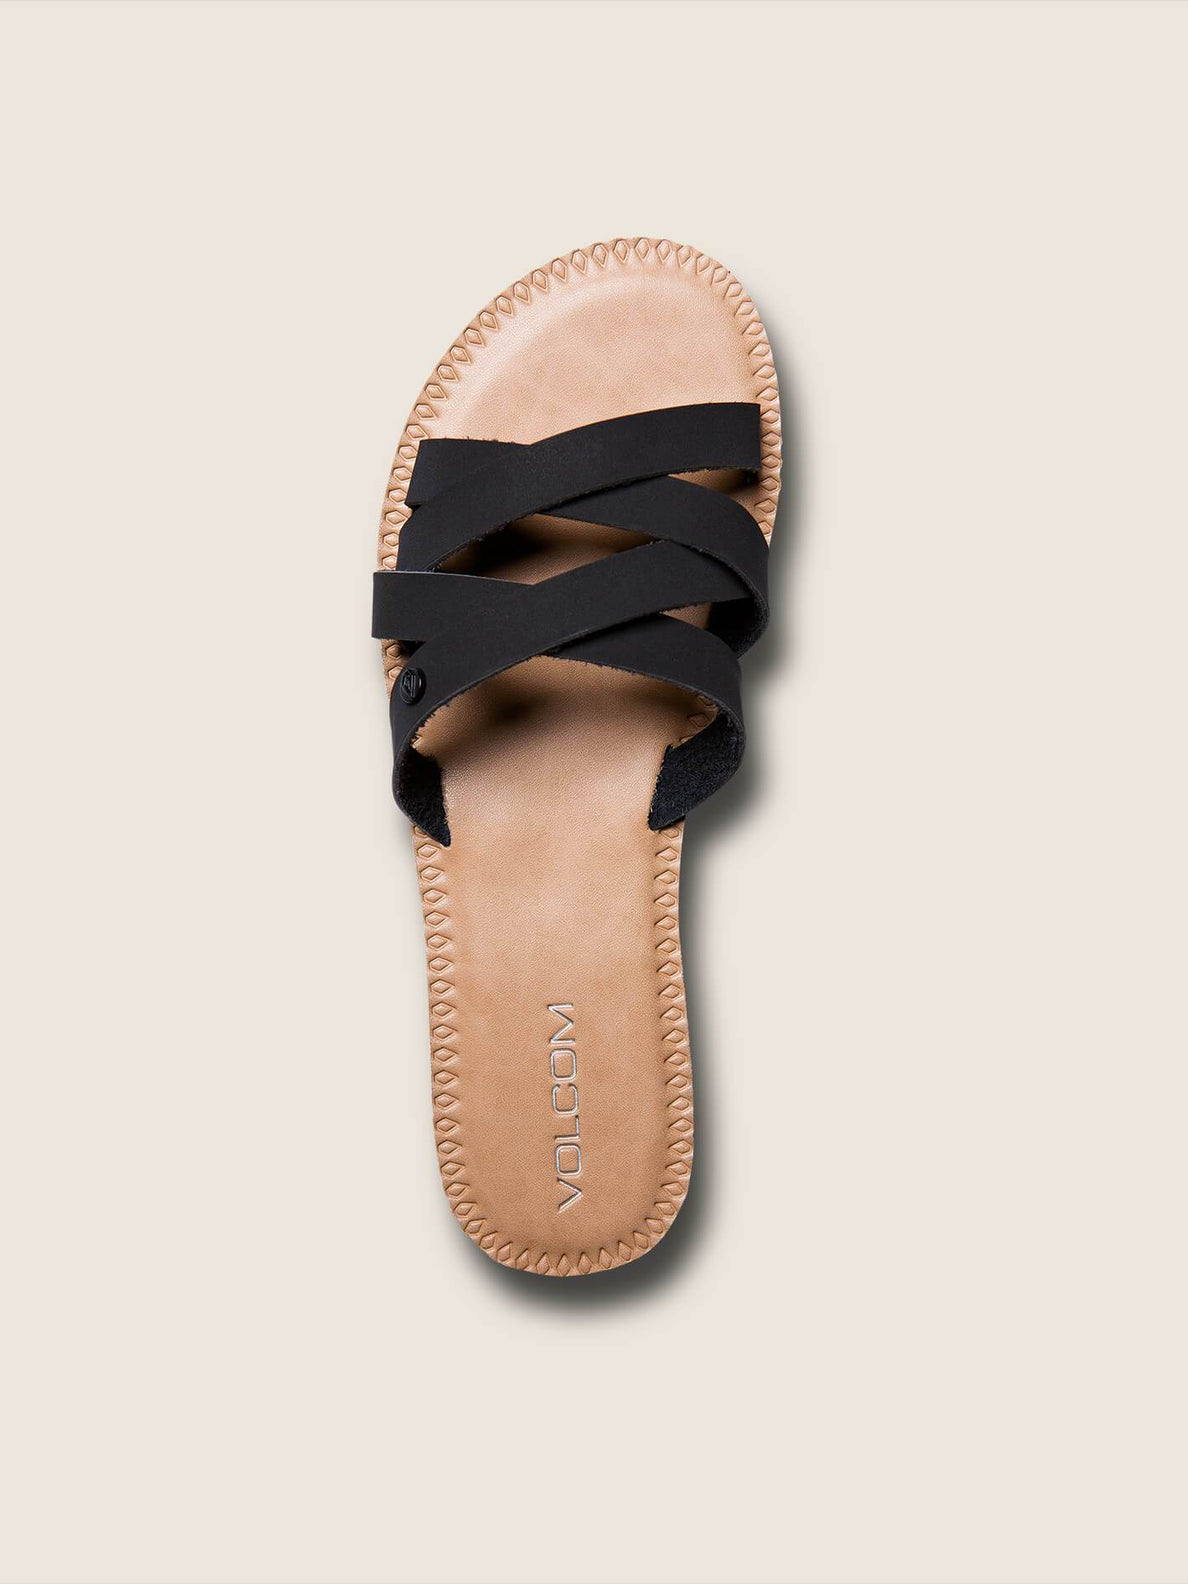 Garden Party Sandals In Black, Alternate View